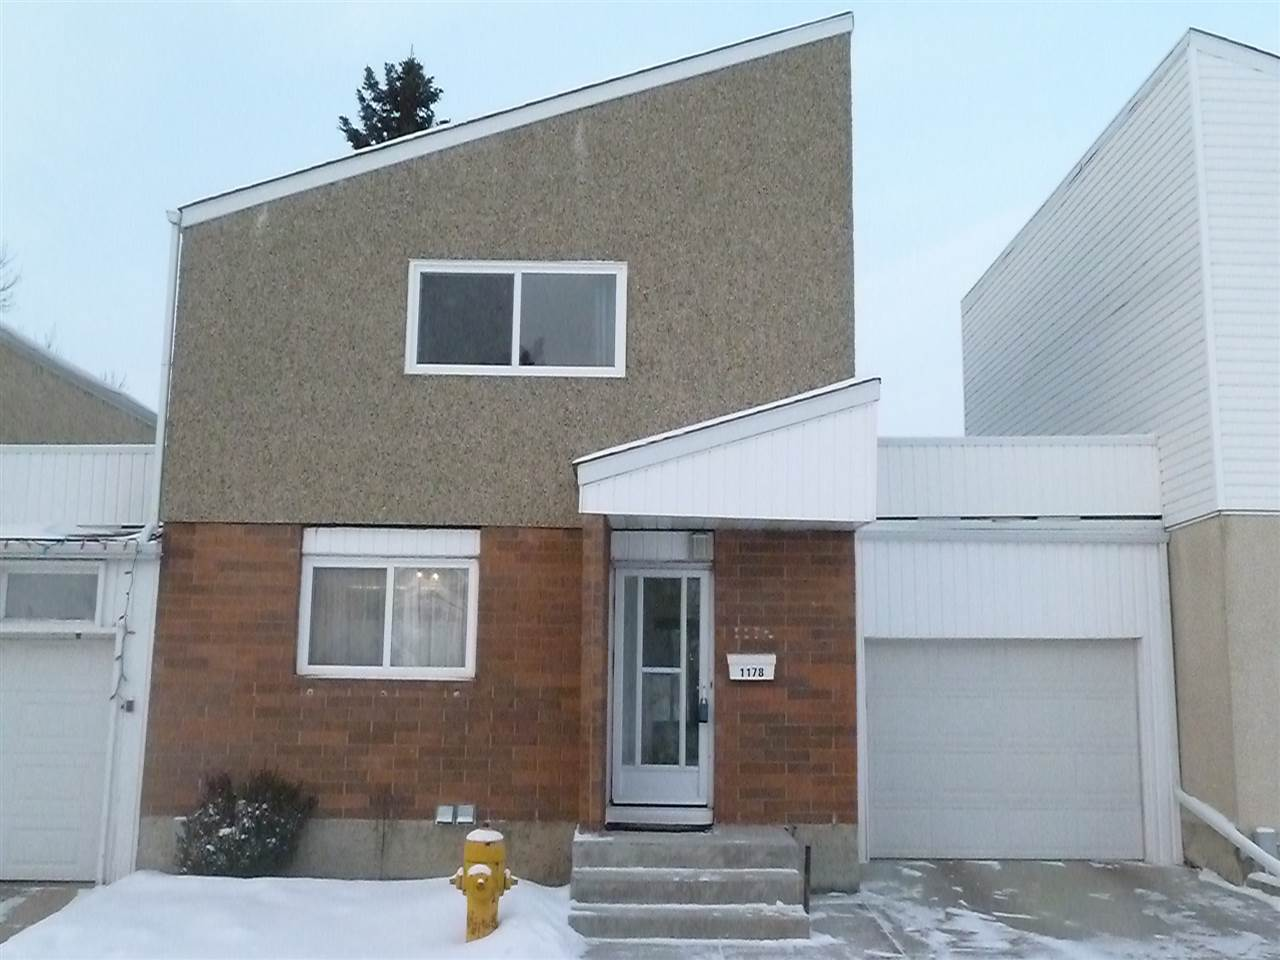 Fabulous location facing Michaels Park,  this lovely sparkling clean and updated 3 bedroom 1 1/2 bath condo is as good as owning a house because there are no shared walls with neighbours.  There have been many upgrades to this unit with newer kitchen cabinets, countertops and some stainless steel appliances, as well as laminate flooring throughout.  Large living room with patio doors to maintenance free deck, fenced yard and 8x10 storage shed.  Spacious master bedroom with large walk-in closet and 2 more ample sized bedrooms.  Partly finished basement, newer hot water tank and large single attached garage with direct access to the unit.  Super low condo fees of $241.00 per month and a high reserve fund make this a very appealing complex that is conveniently located close to all amenities.  Quick possession possible!